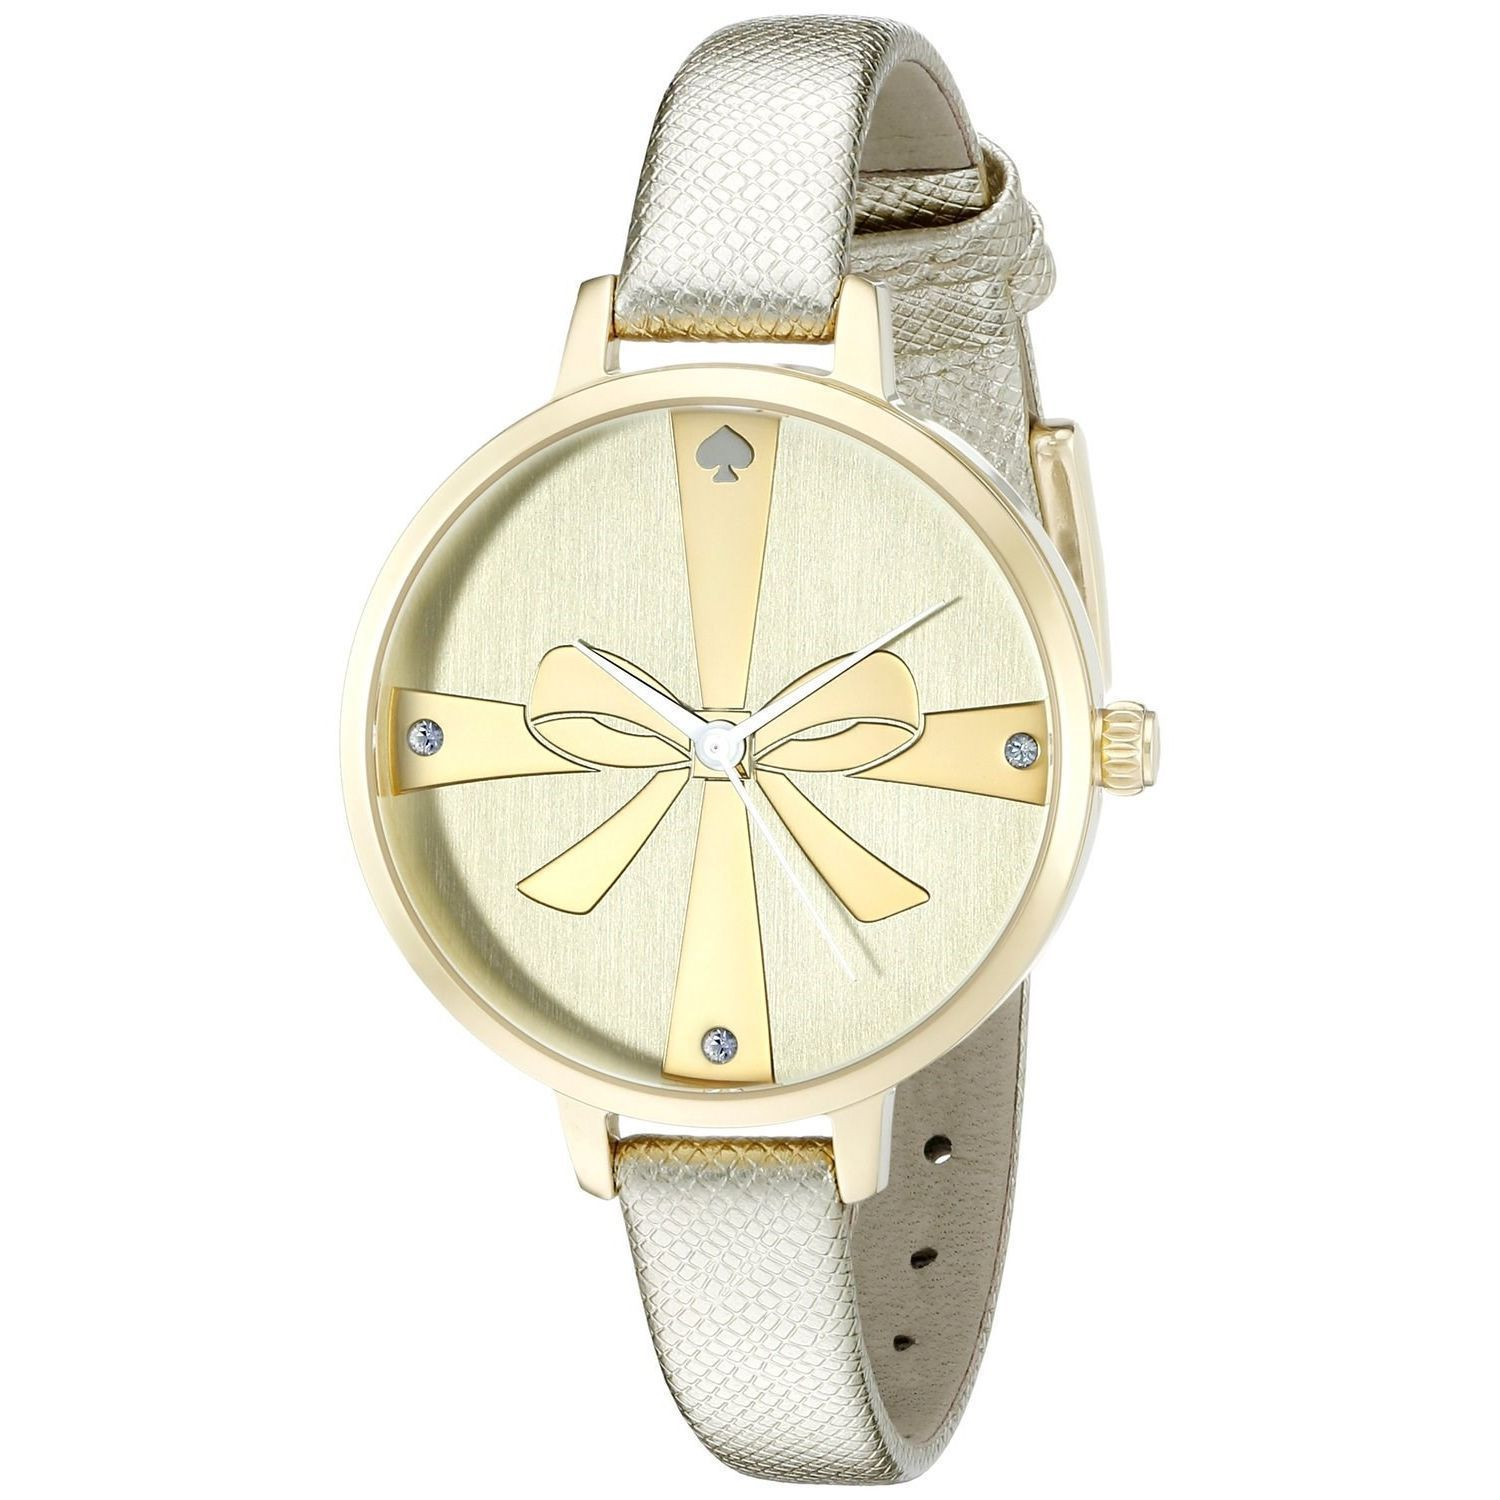 Kate Spade Women s 1YRU0878  Metro Wrapped Up  Crystal Watch ... 6bed68a966